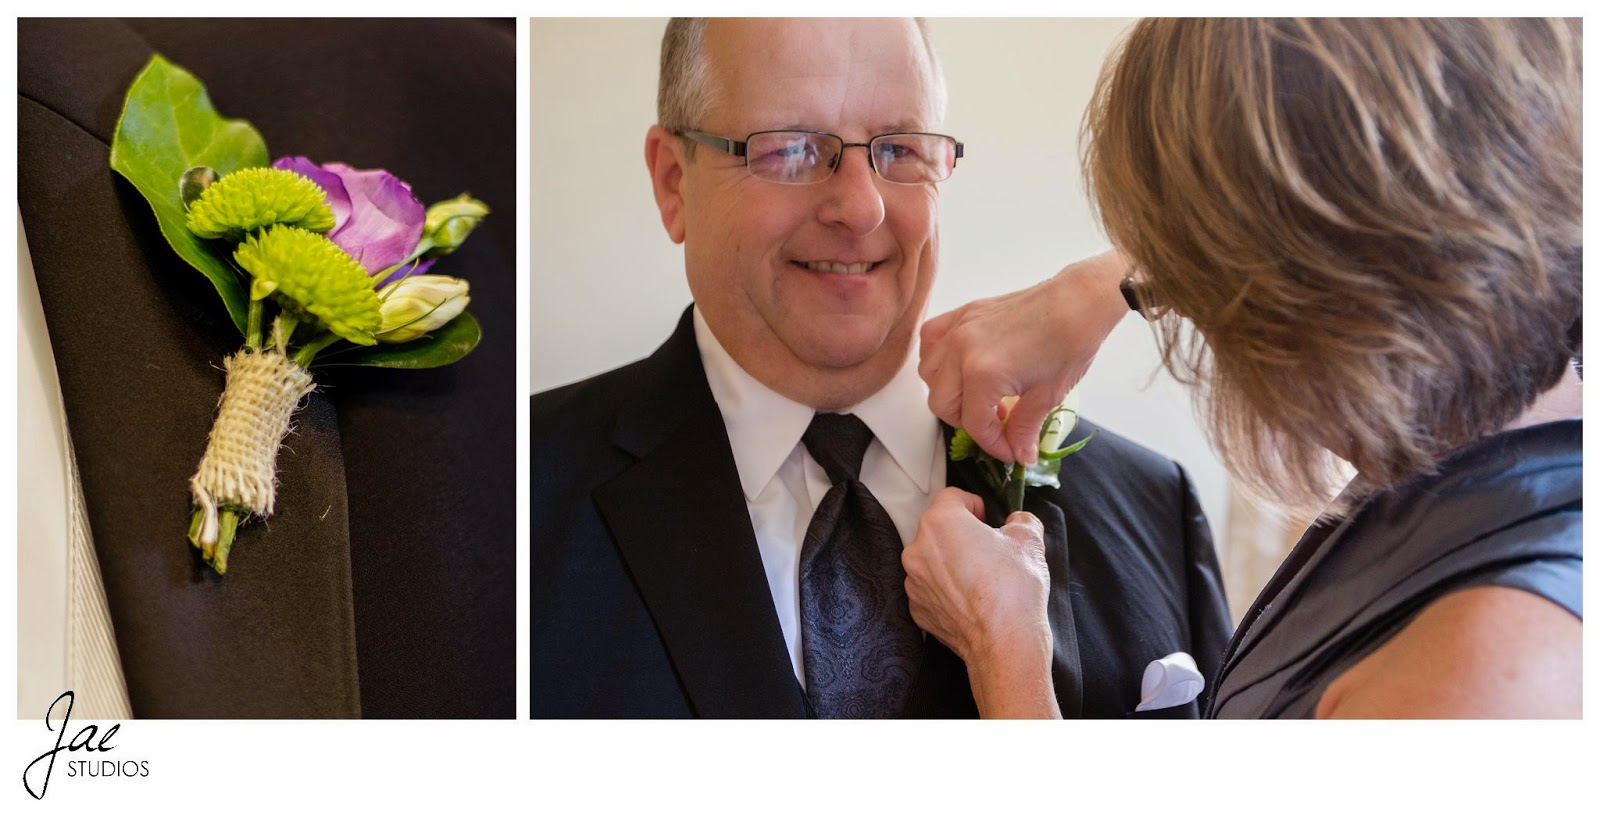 Jonathan and Julie, Bird cage, West Manor Estate, Wedding, Lynchburg, Virginia, Jae Studios, father of the bride, mother of the bride, boutonniere, pinning, black, tuxedo purple, green, flowers